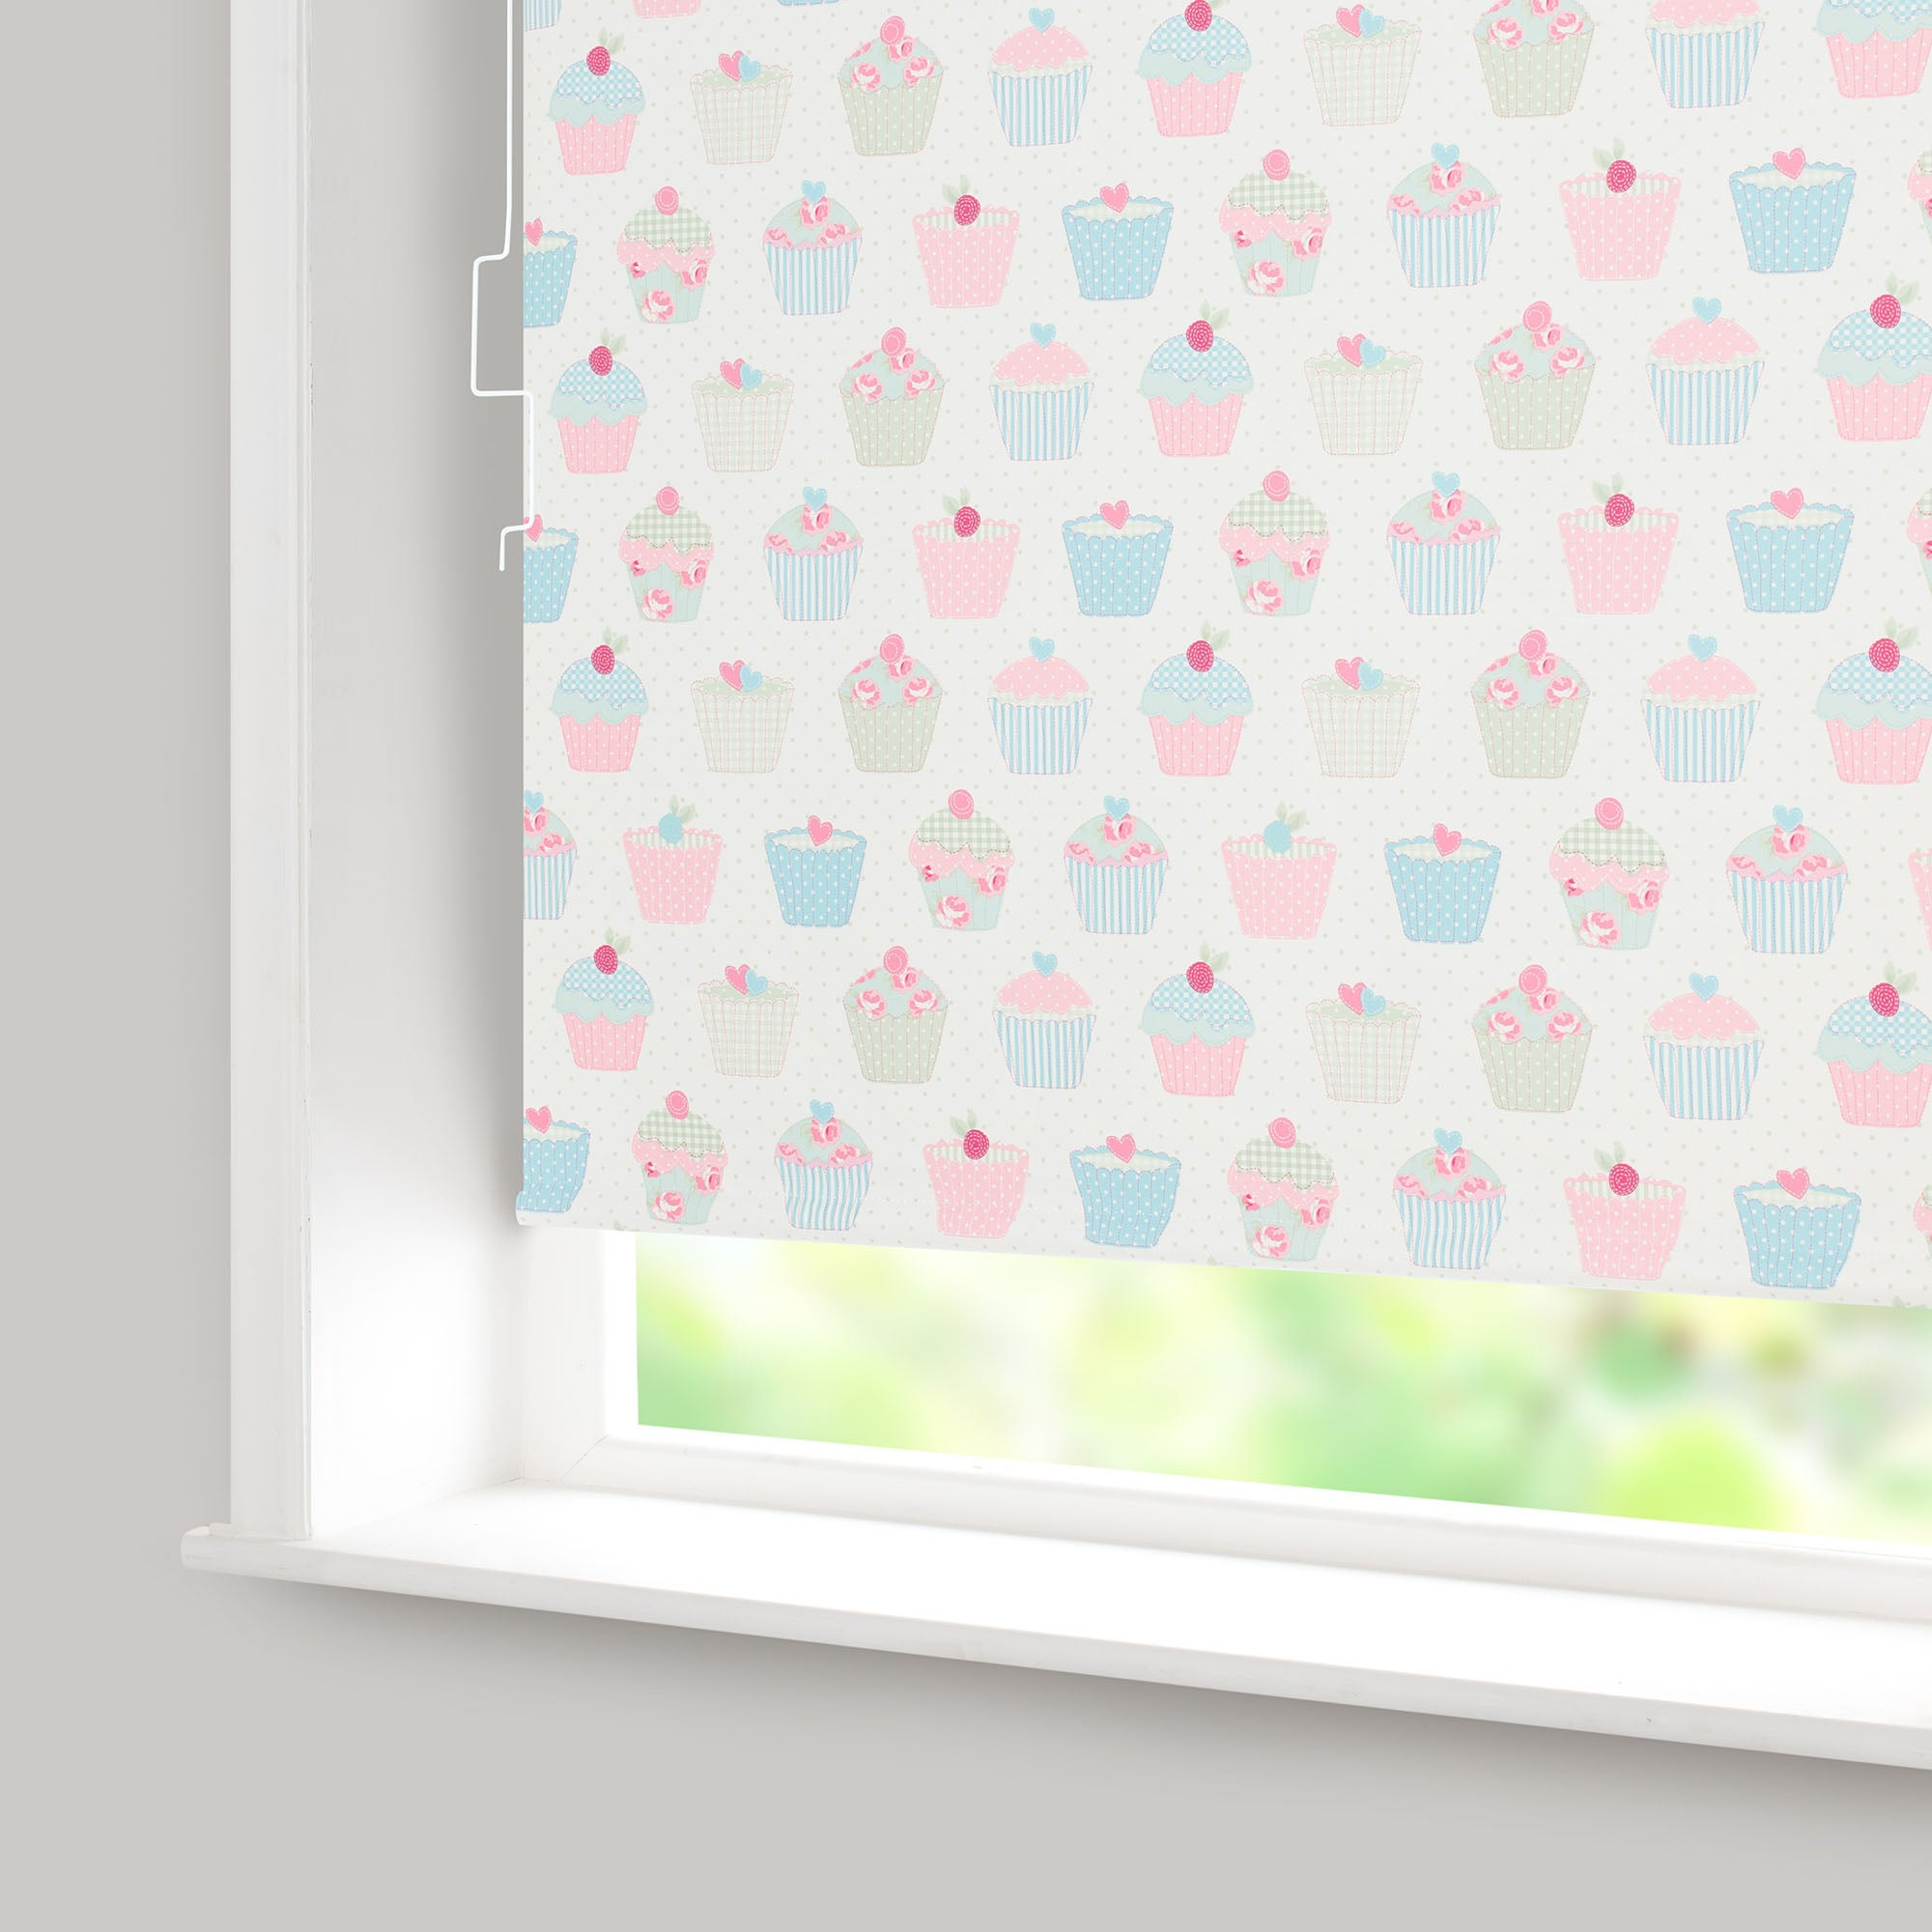 Cupcakes Blackout Cordless Roller Blind